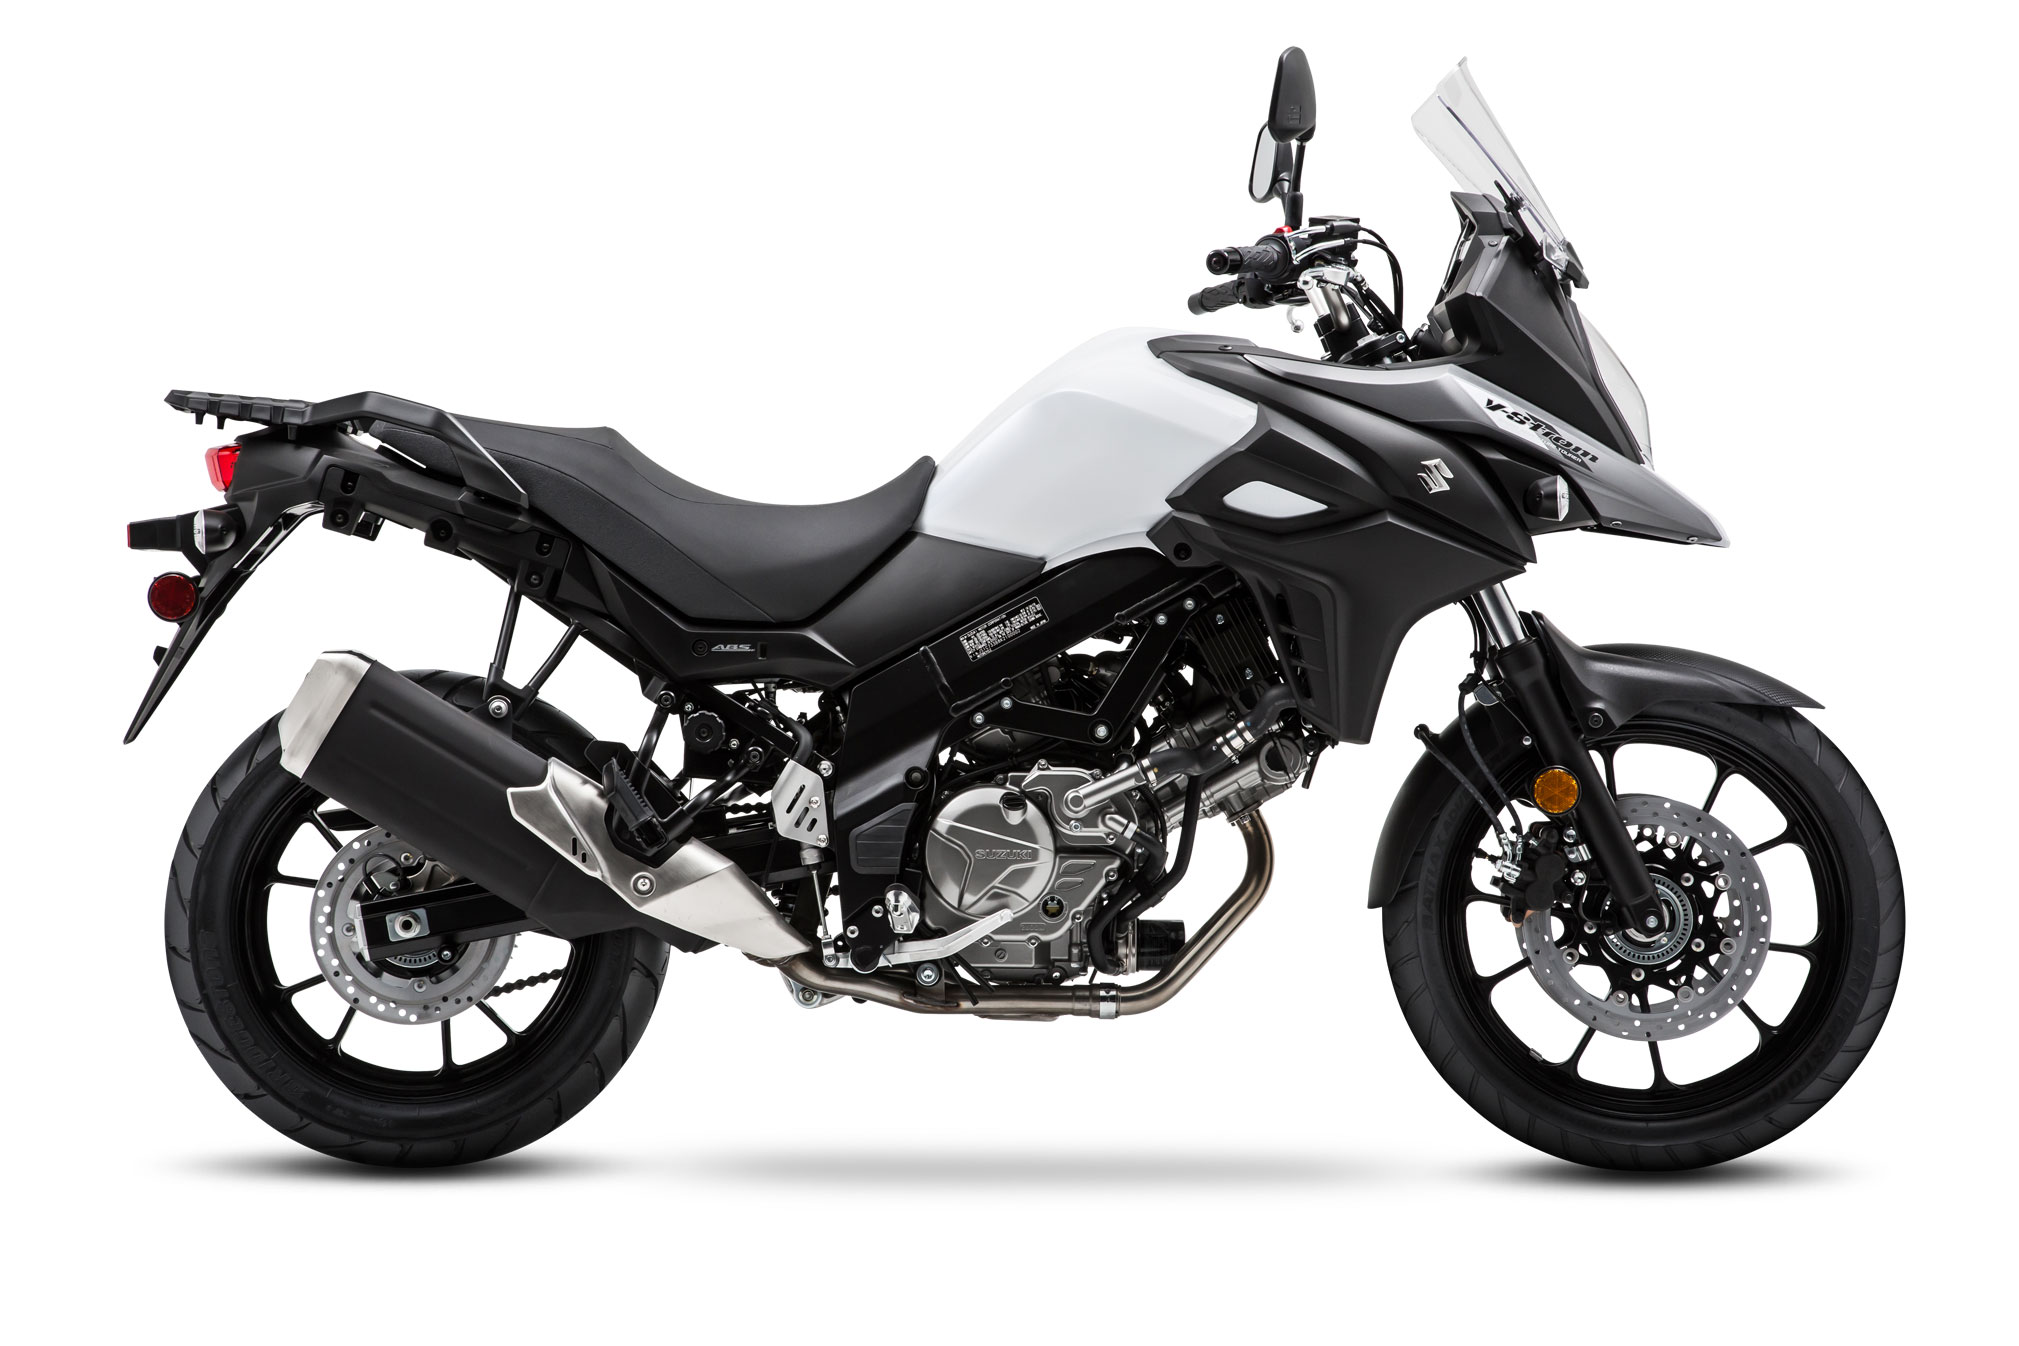 2018 v-strom owners manual